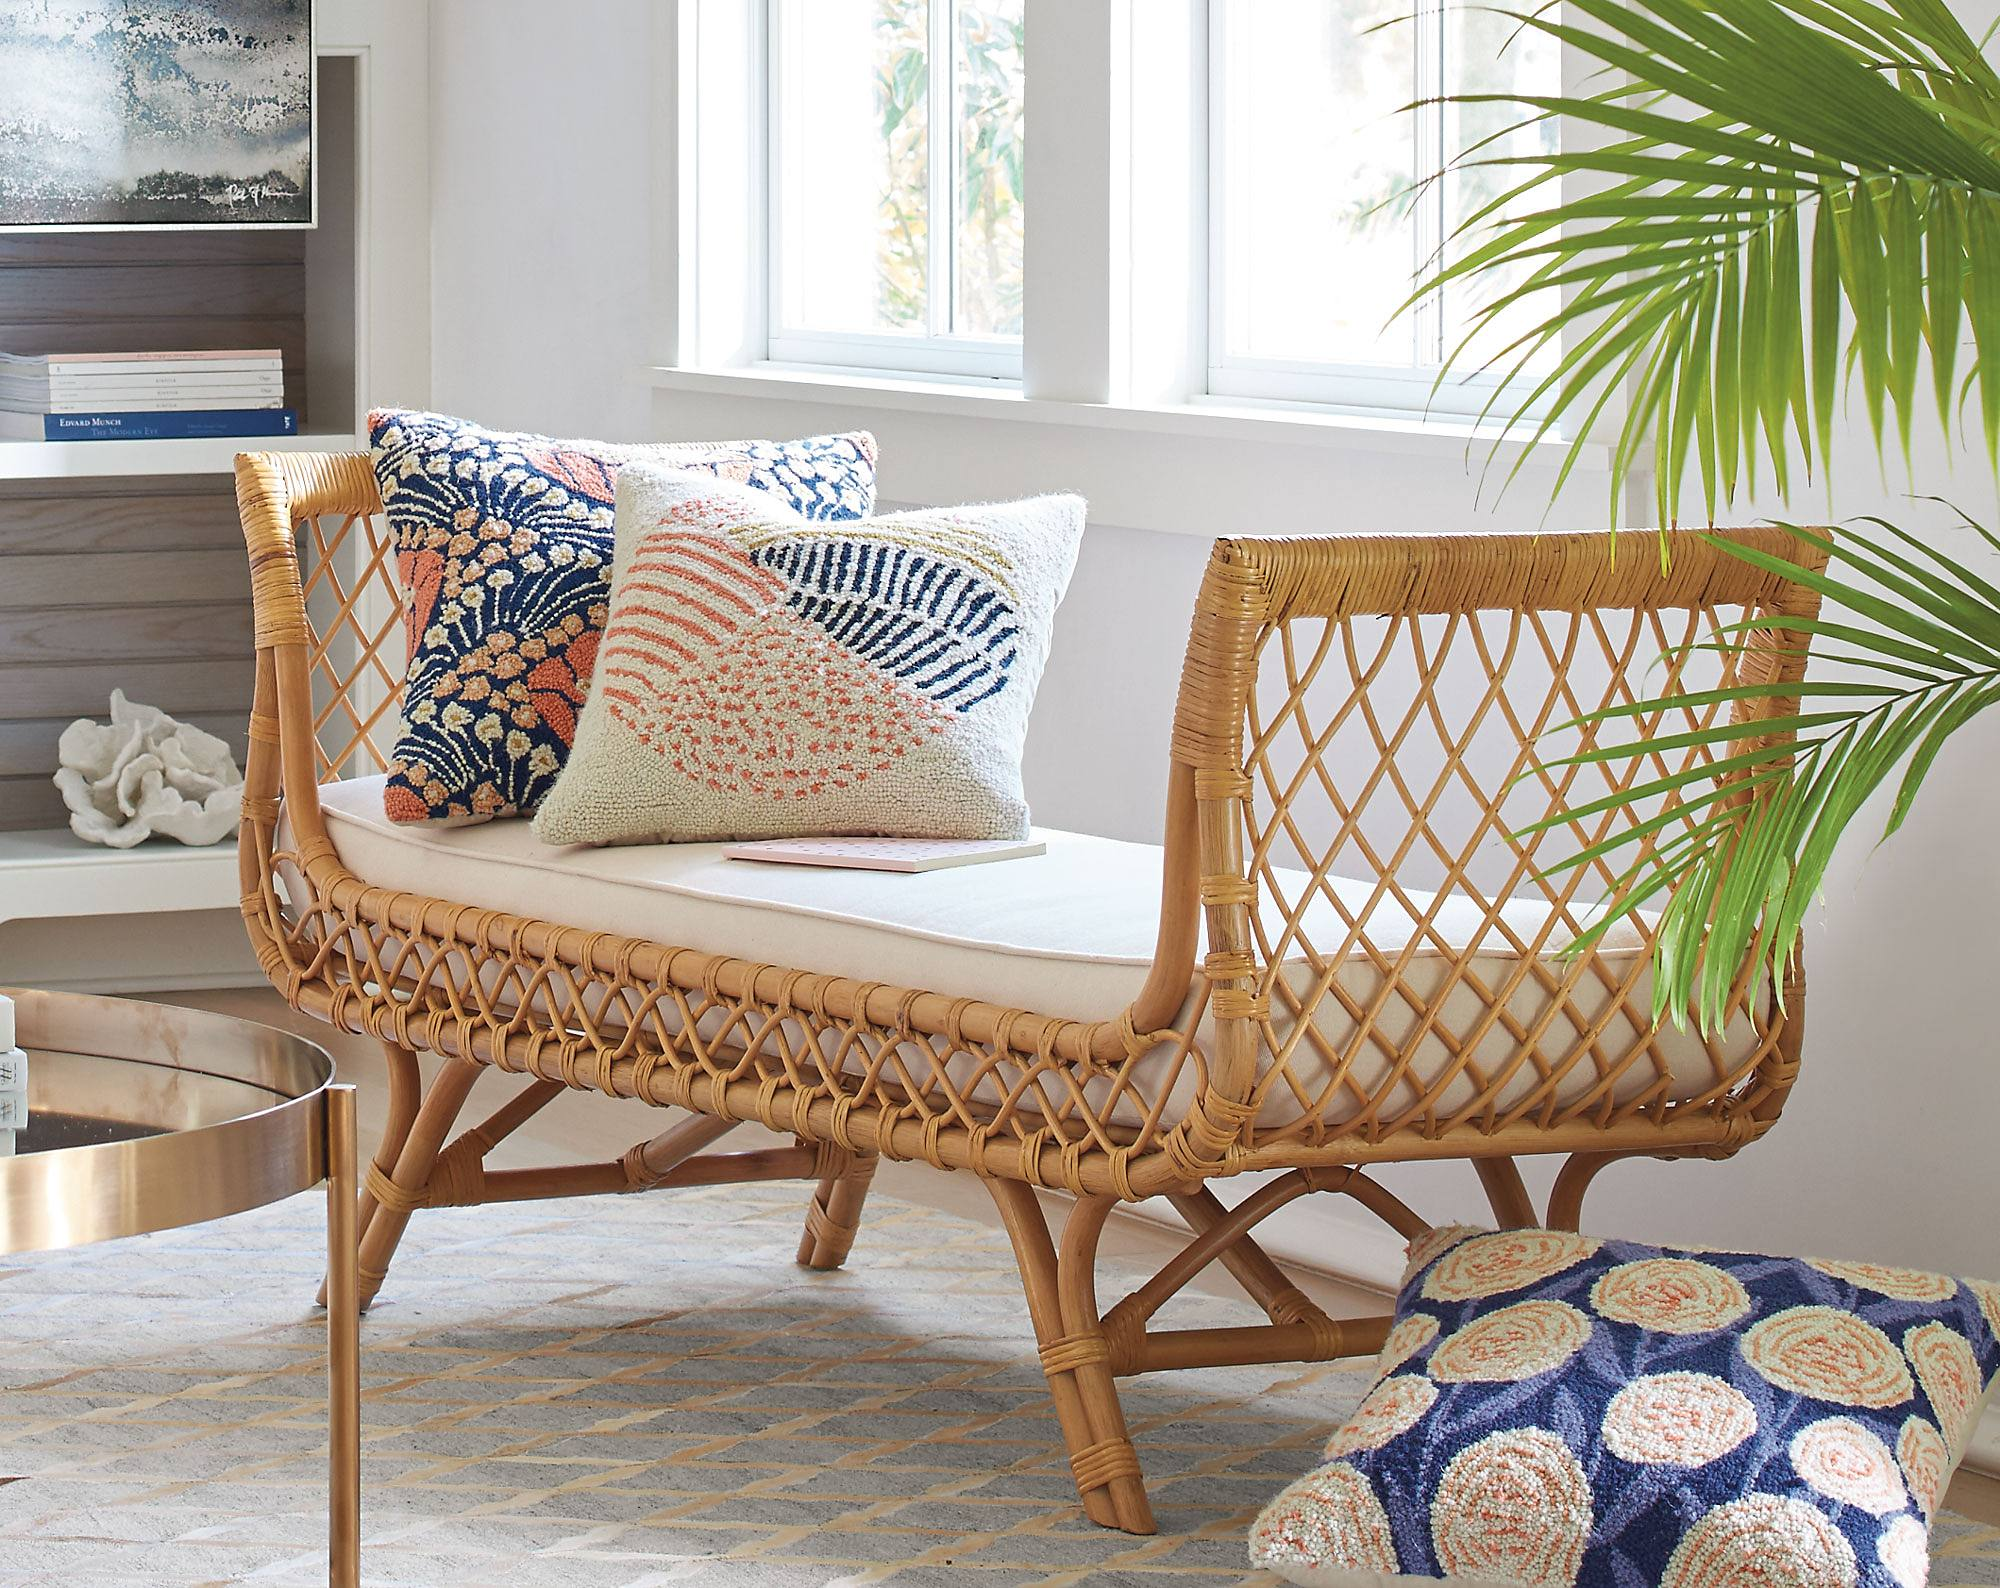 Grandin Road offers indoor furniture covering this important range of  honest materials  bringing the best elements in to mix creatively in room  settings and  Indoor Rattan Furniture  A Natural Art Form   Grandin Road Blog. Indoor Rattan Furniture. Home Design Ideas